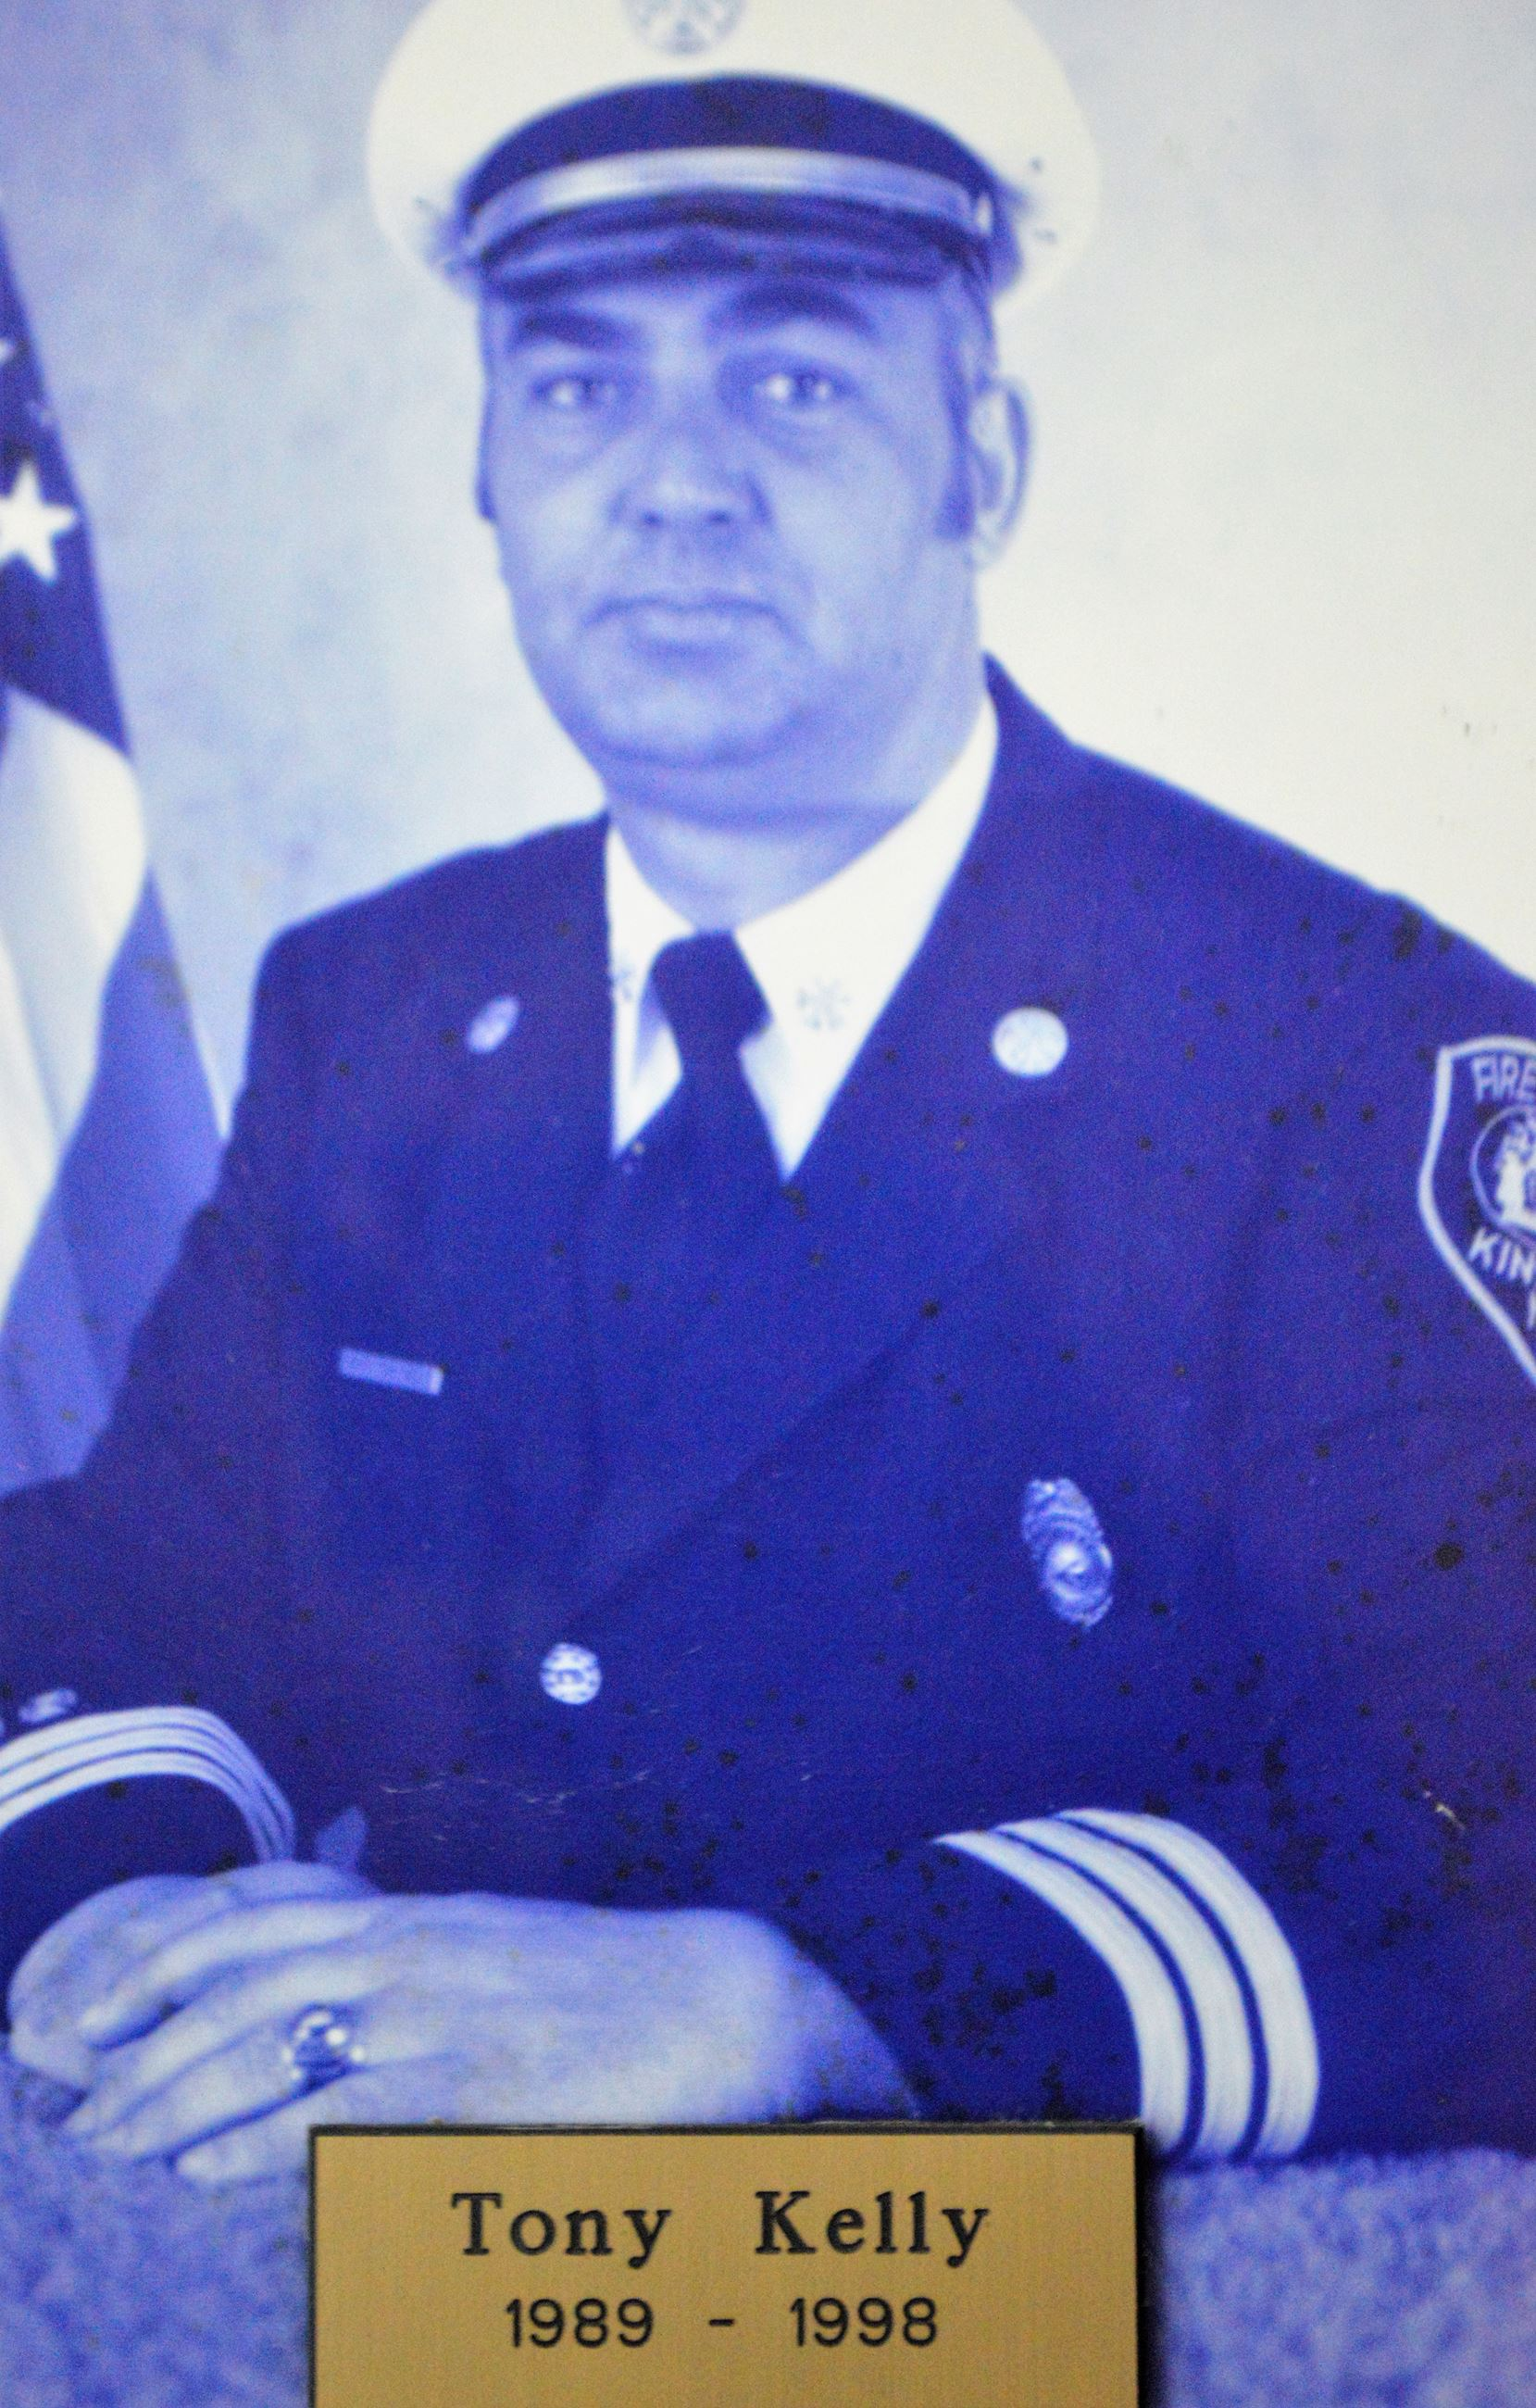 The Late Fire Chief Anthony Kelly Served from 1989 - 1998